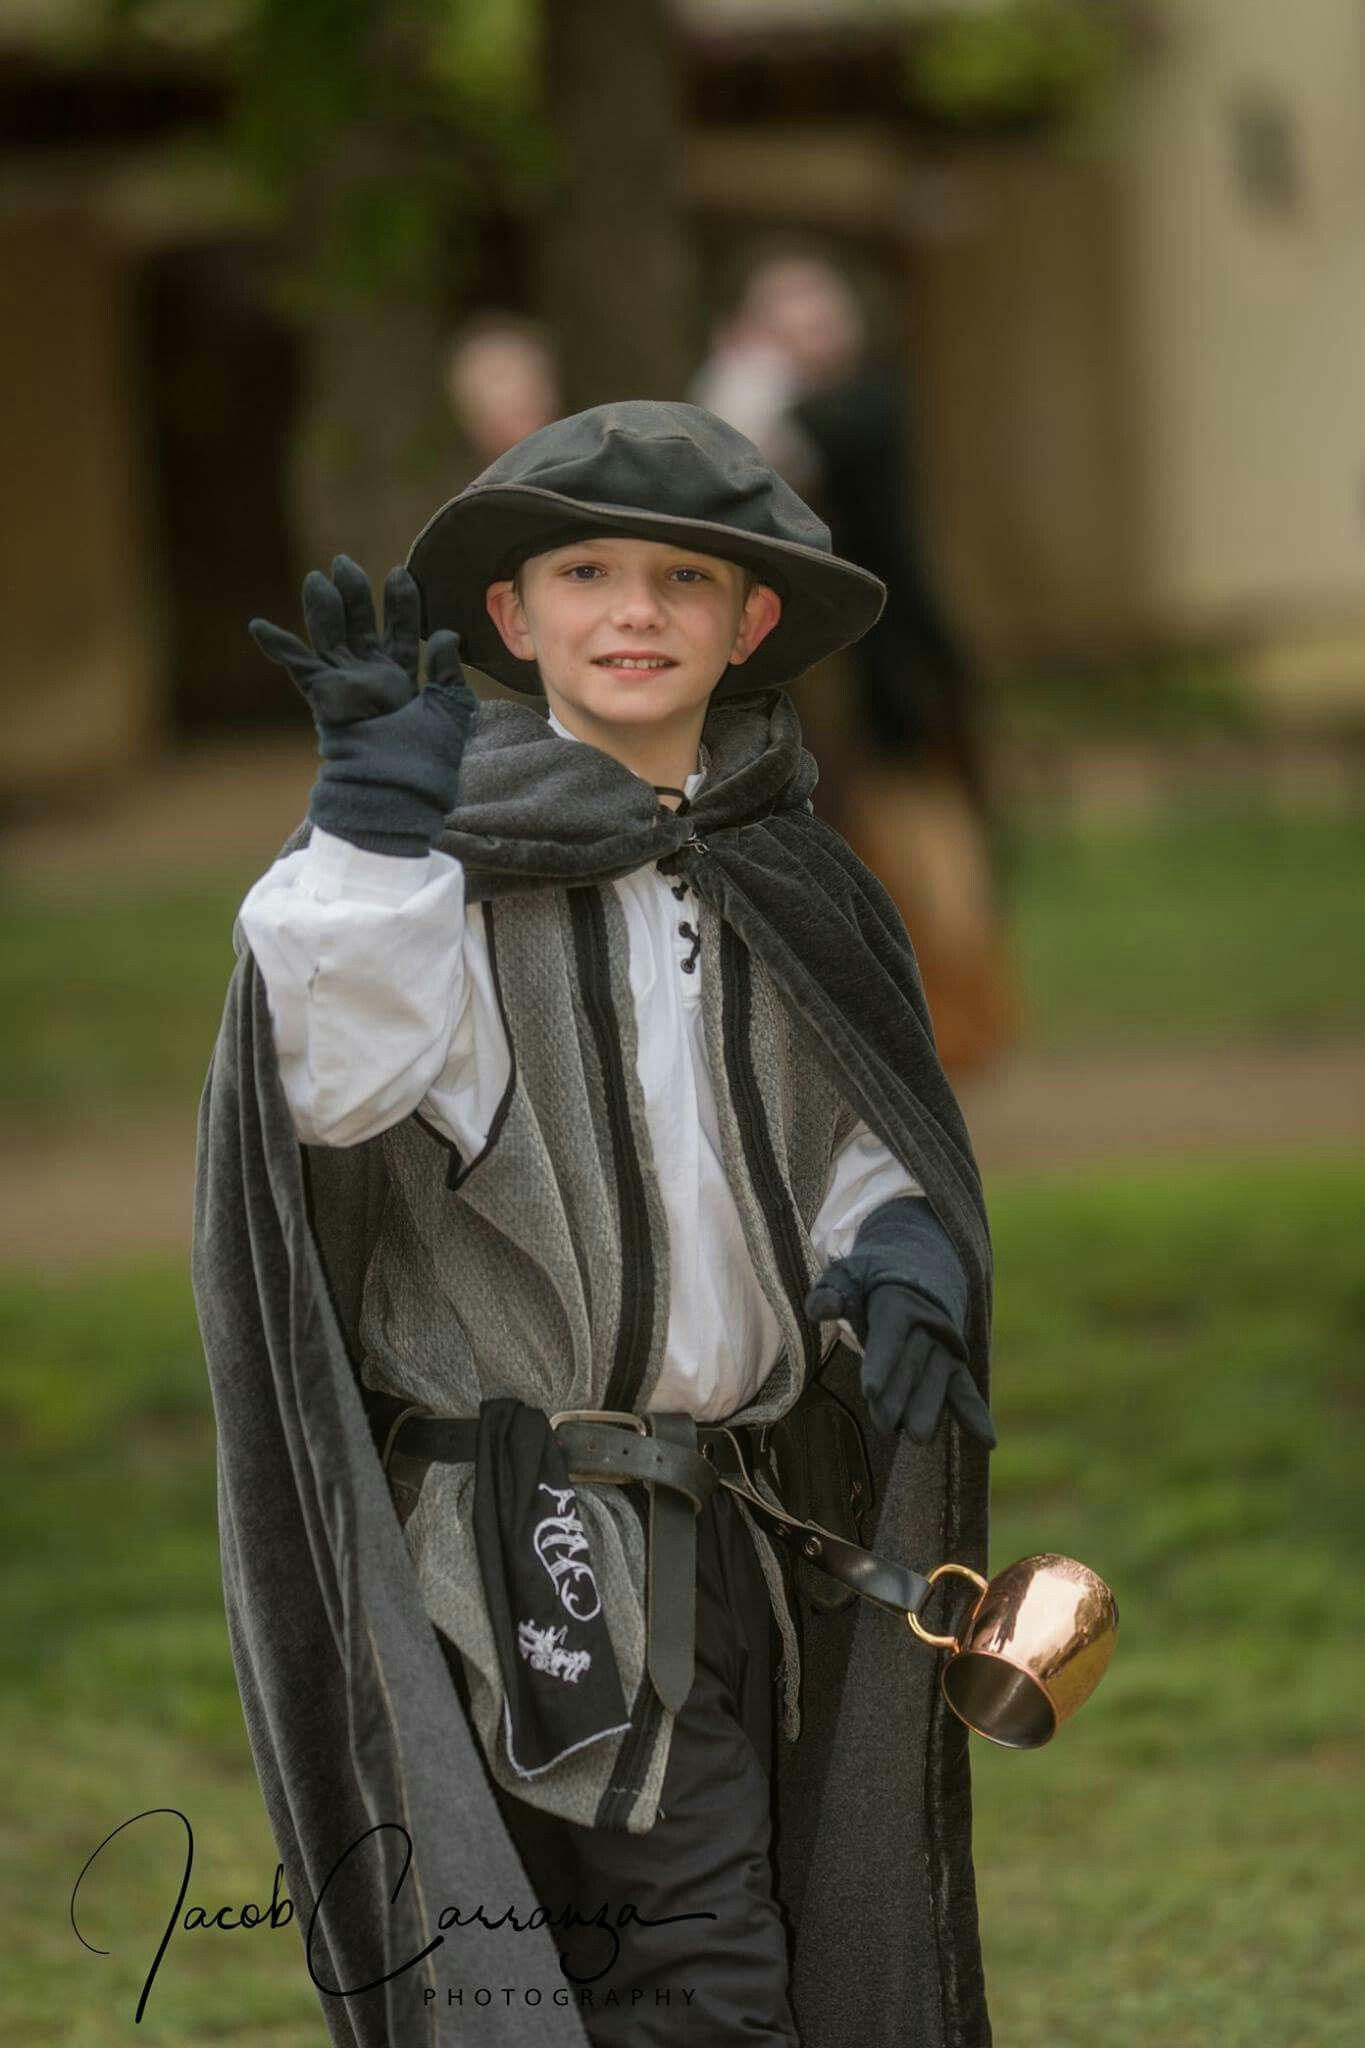 Scarborough Fair Renaissance Festival costume for boy